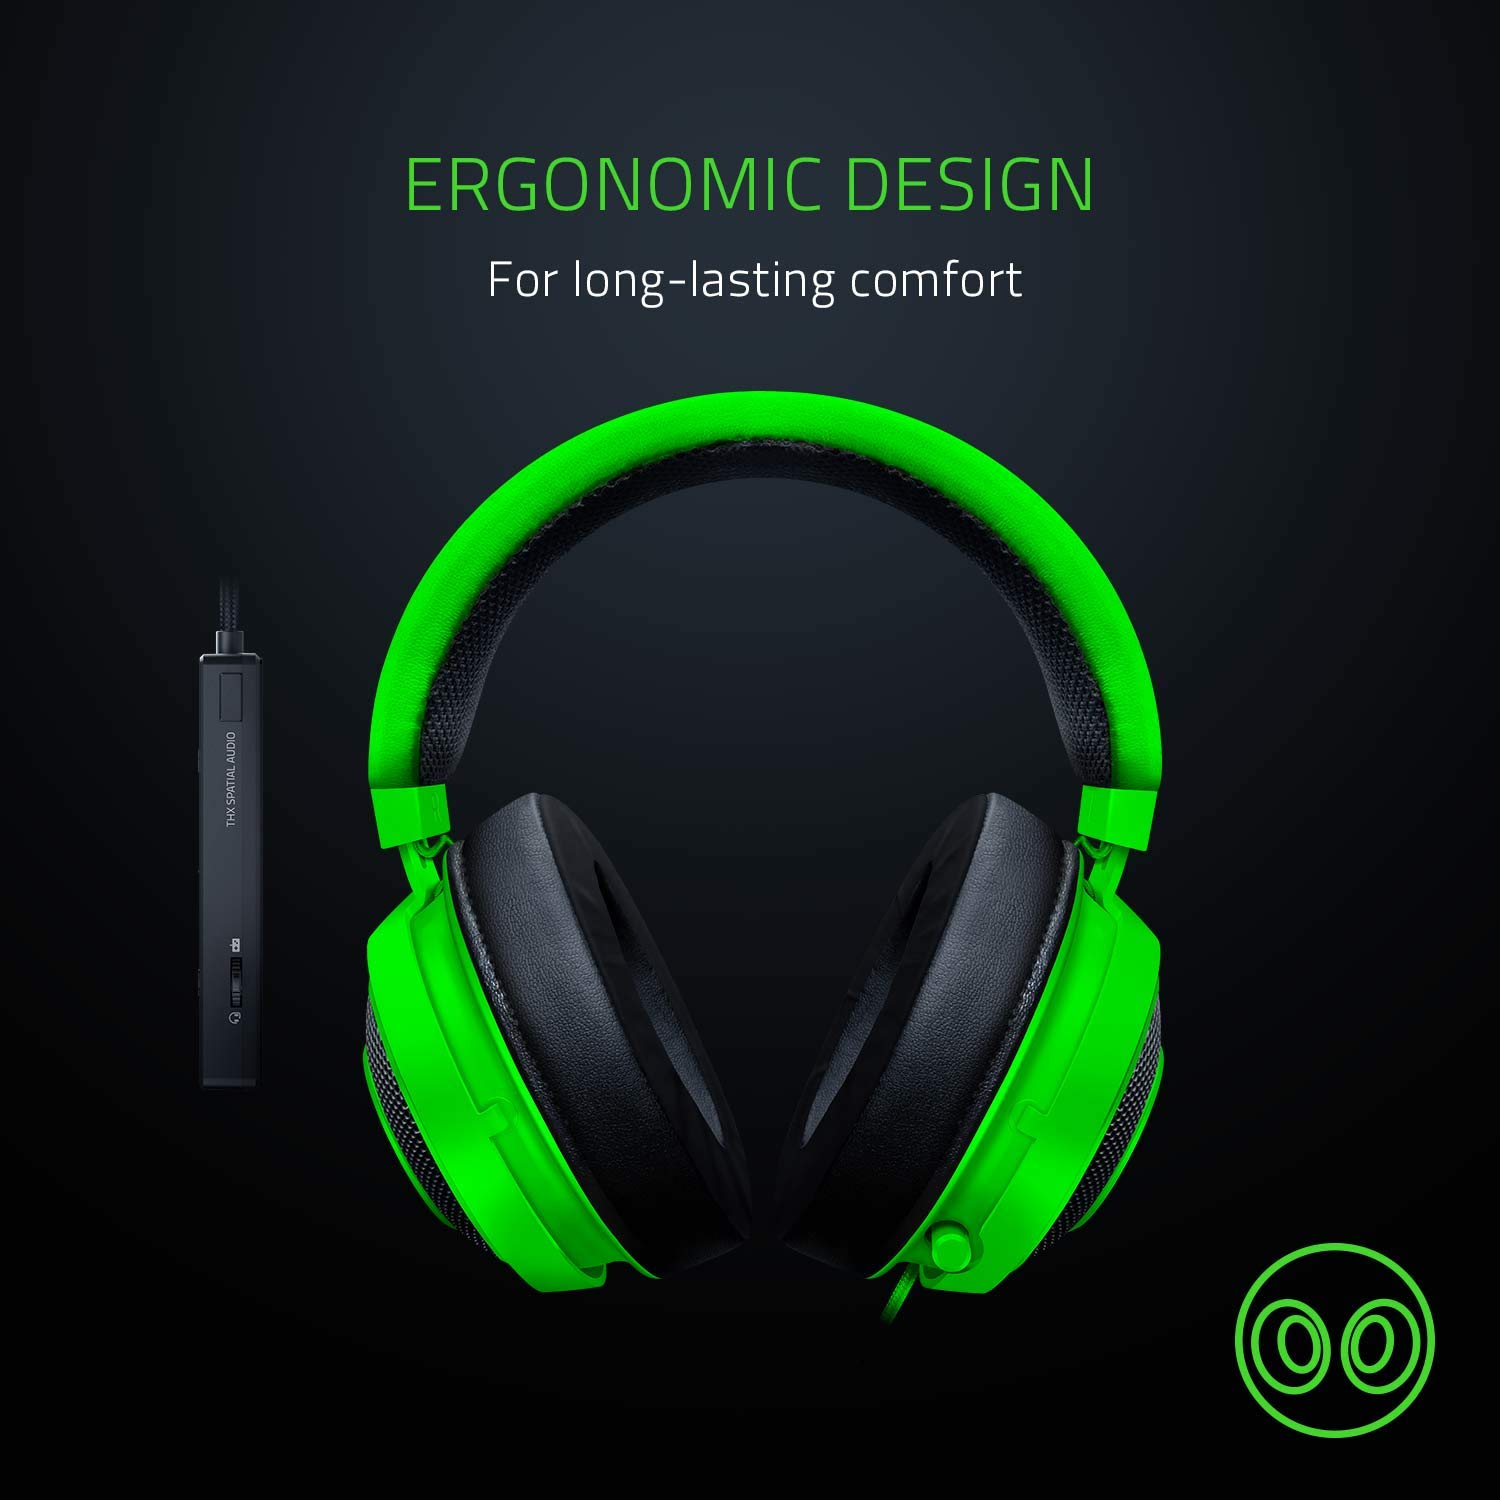 Razer Kraken Tournament Edition: THX Spatial Audio - Full Audio Control - Cooling Gel-Infused Ear Cushions - Gaming Headset Works with PC, PS4, Xbox One, Switch, & Mobile Devices - Black by Razer (Image #6)